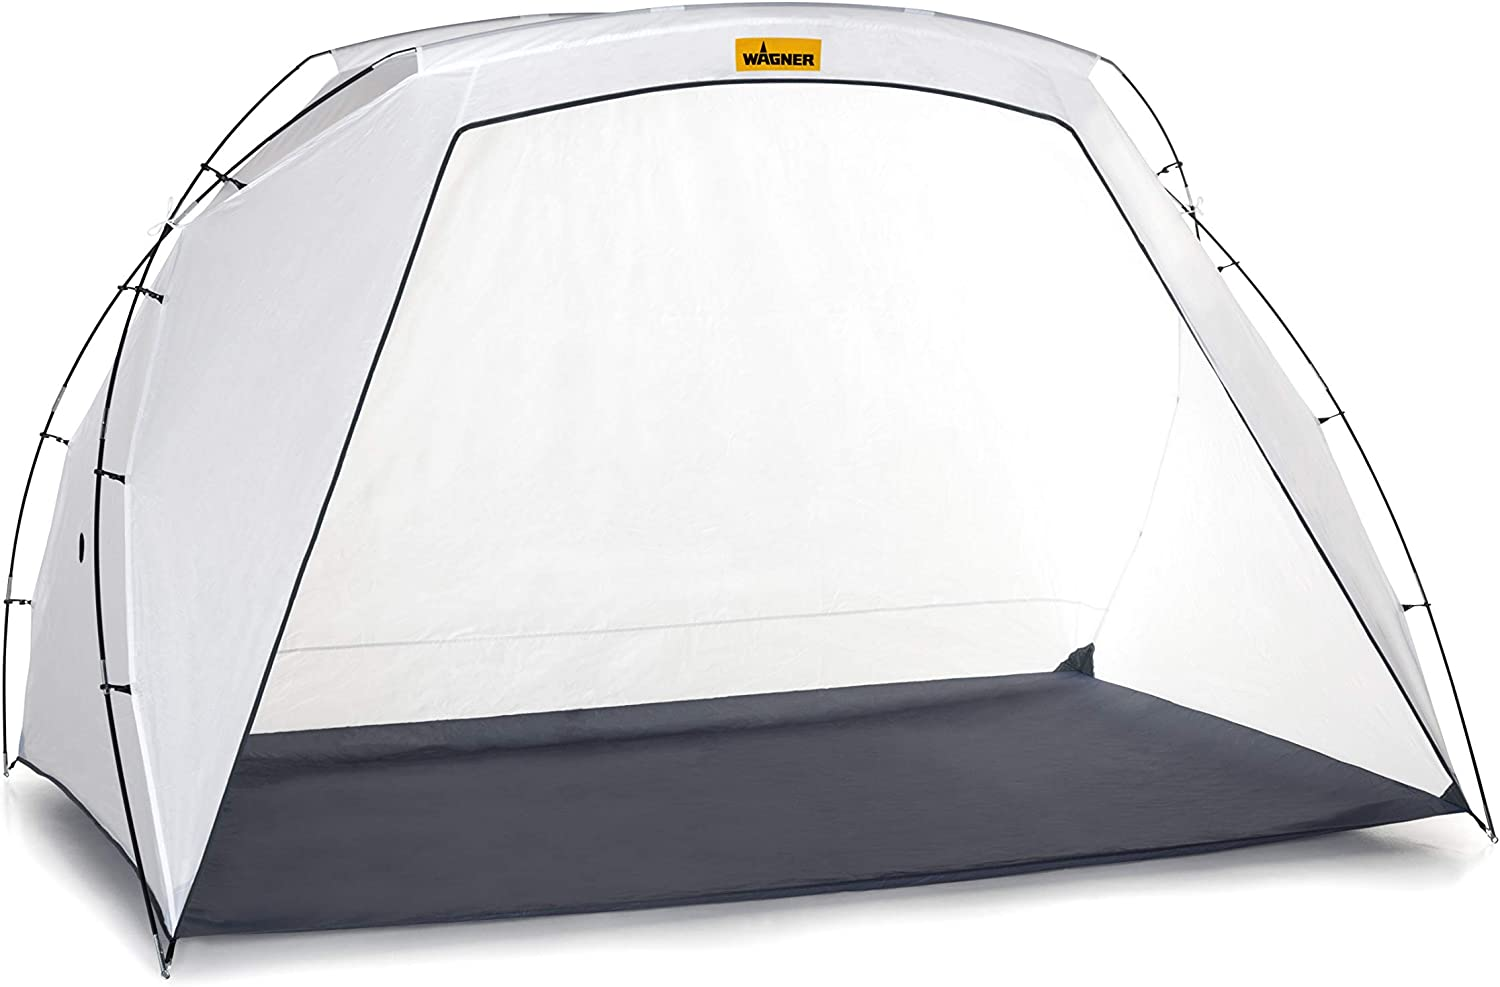 Wagner 2370376 Studio Tent for Paint Spraying